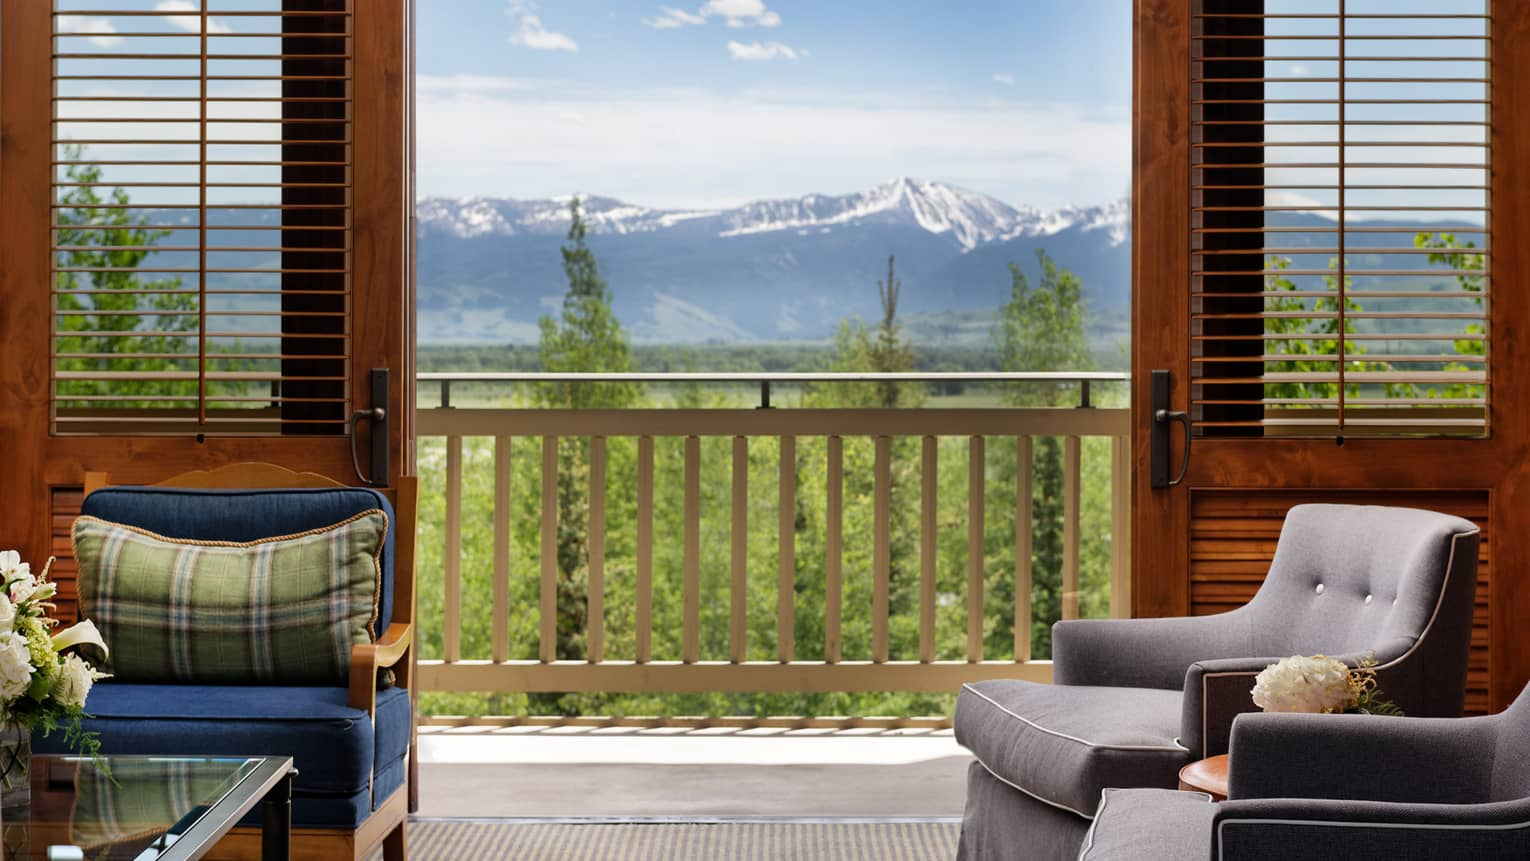 View from the seating area of Residence 852, with open doors to a patio and snow-capped mountains in the distance